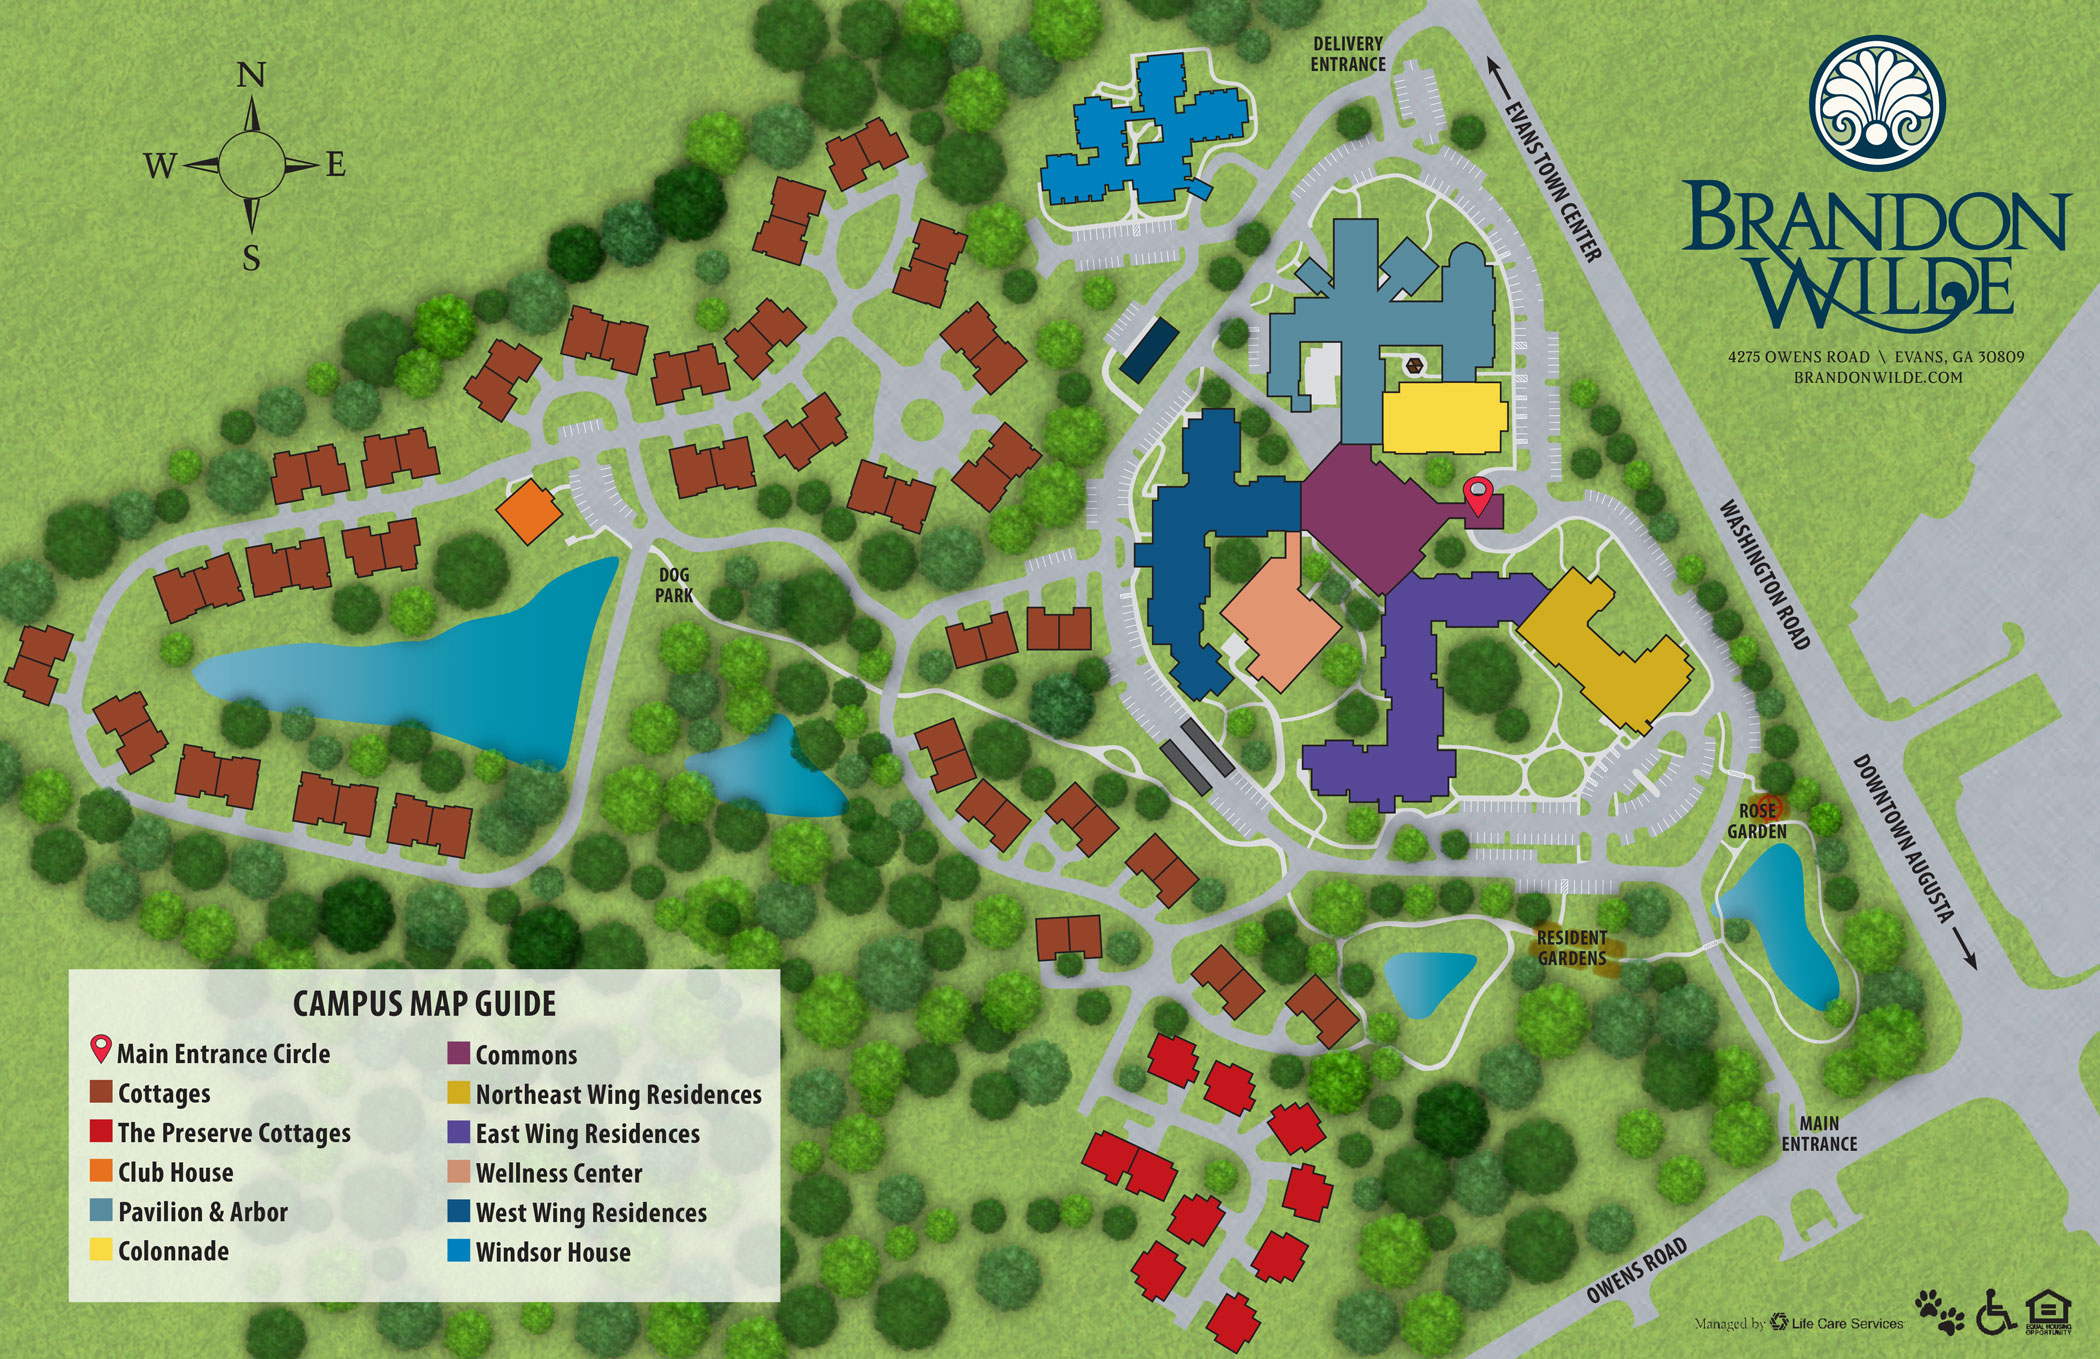 Brandon Wilde 73-acre campus with ponds, dog park, mini-gardens, walking trails and bike paths.